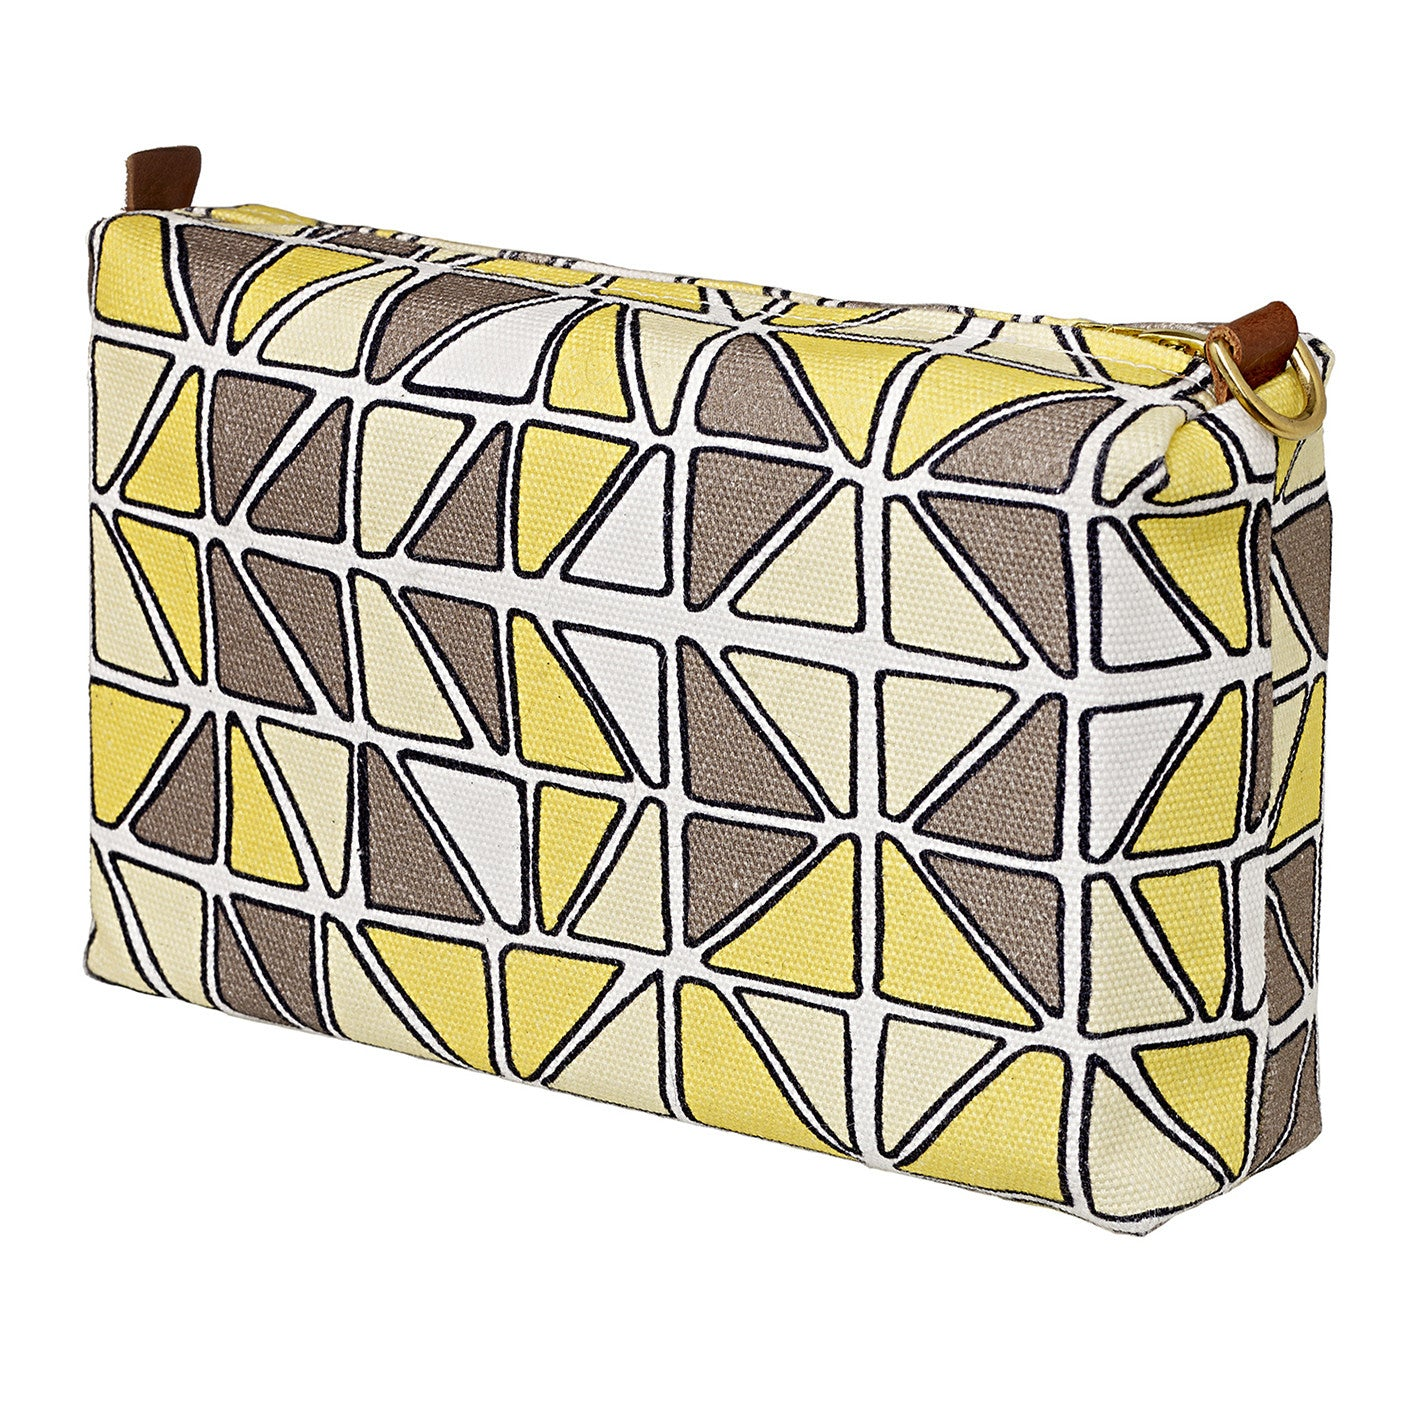 Mosaic Stained Glass Pattern Canvas Wash (toiletry) Bag in Maize & Straw Yellow and Grey